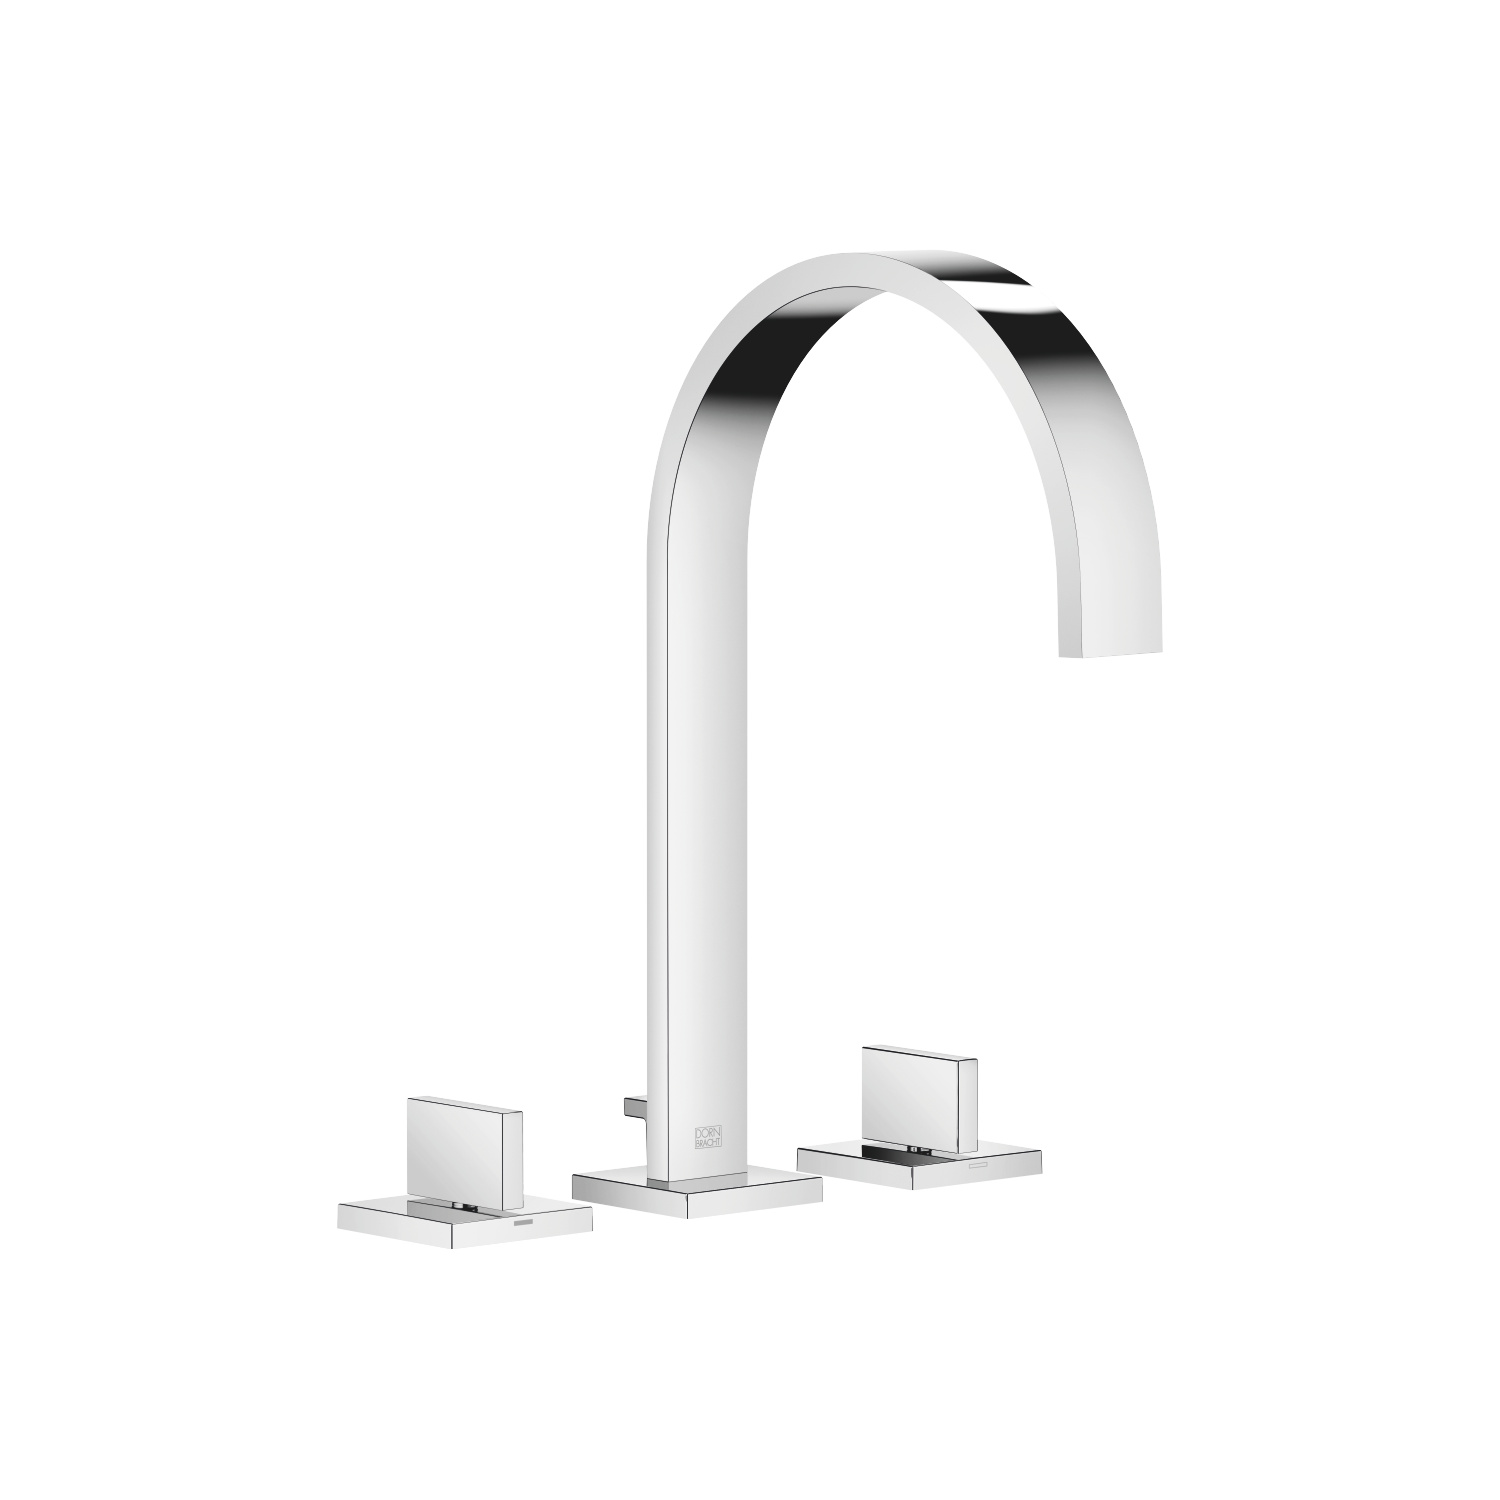 Three-hole lavatory mixer with drain - polished chrome